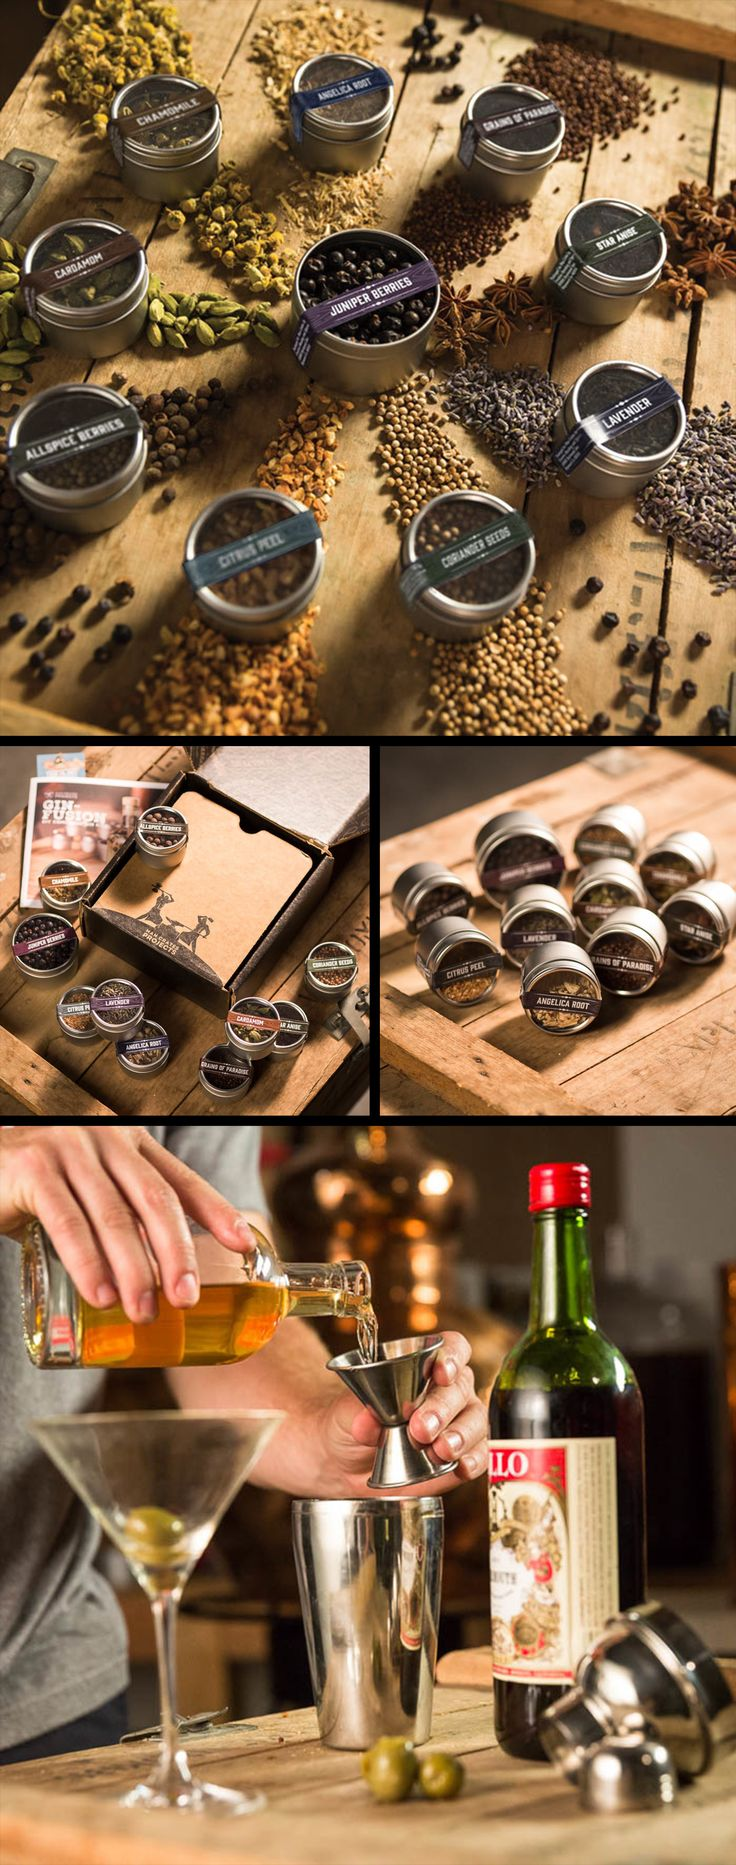 26 best man crates images on pinterest man crates christmas gift refill his diy drinking gin kit so your man can create to his hearts content solutioingenieria Gallery